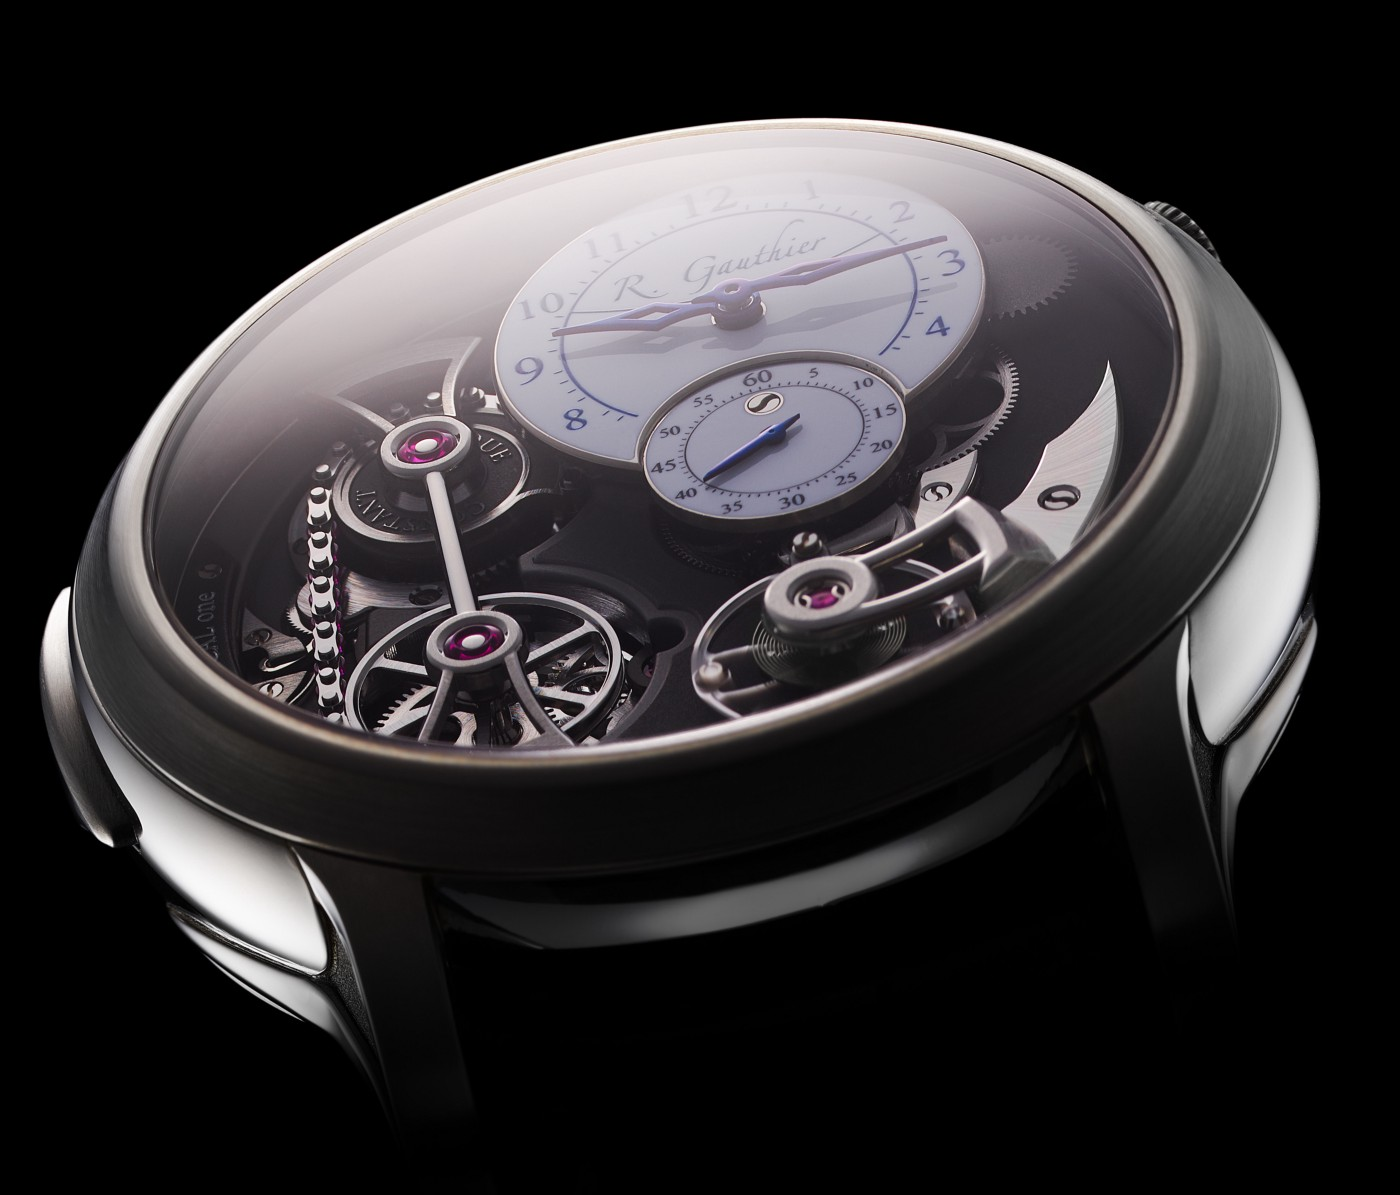 A close look at the white fired-enamel dials on this Romain Gauthier Logical One in natural titanium